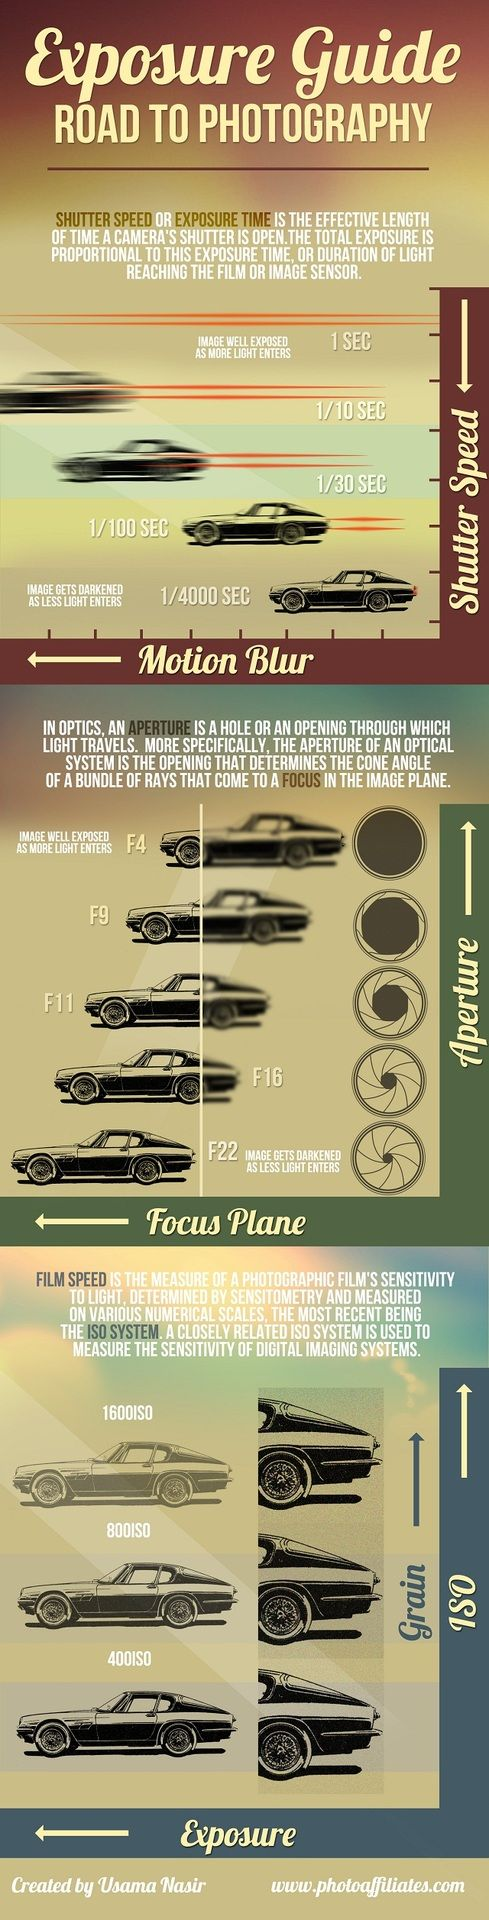 Exposure Guide: Road to Photography [Infographic]http://daily-infographic.tumblr.com/